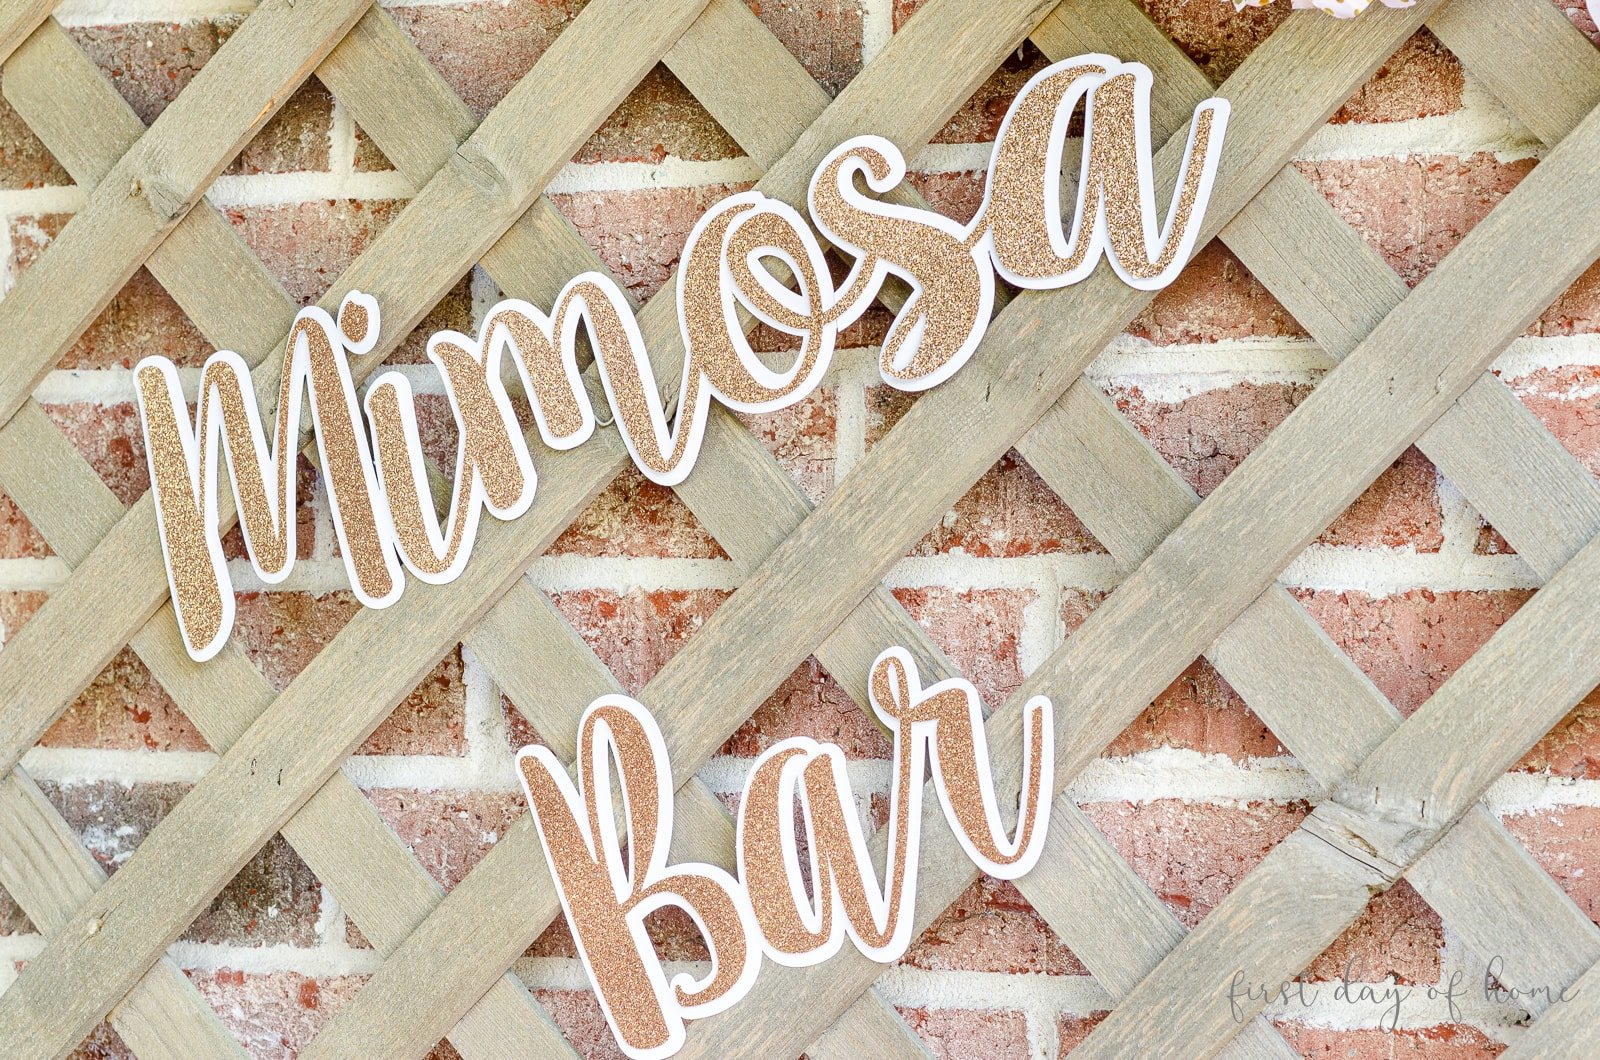 Mimosa bar sign cut with Silhouette Cameo